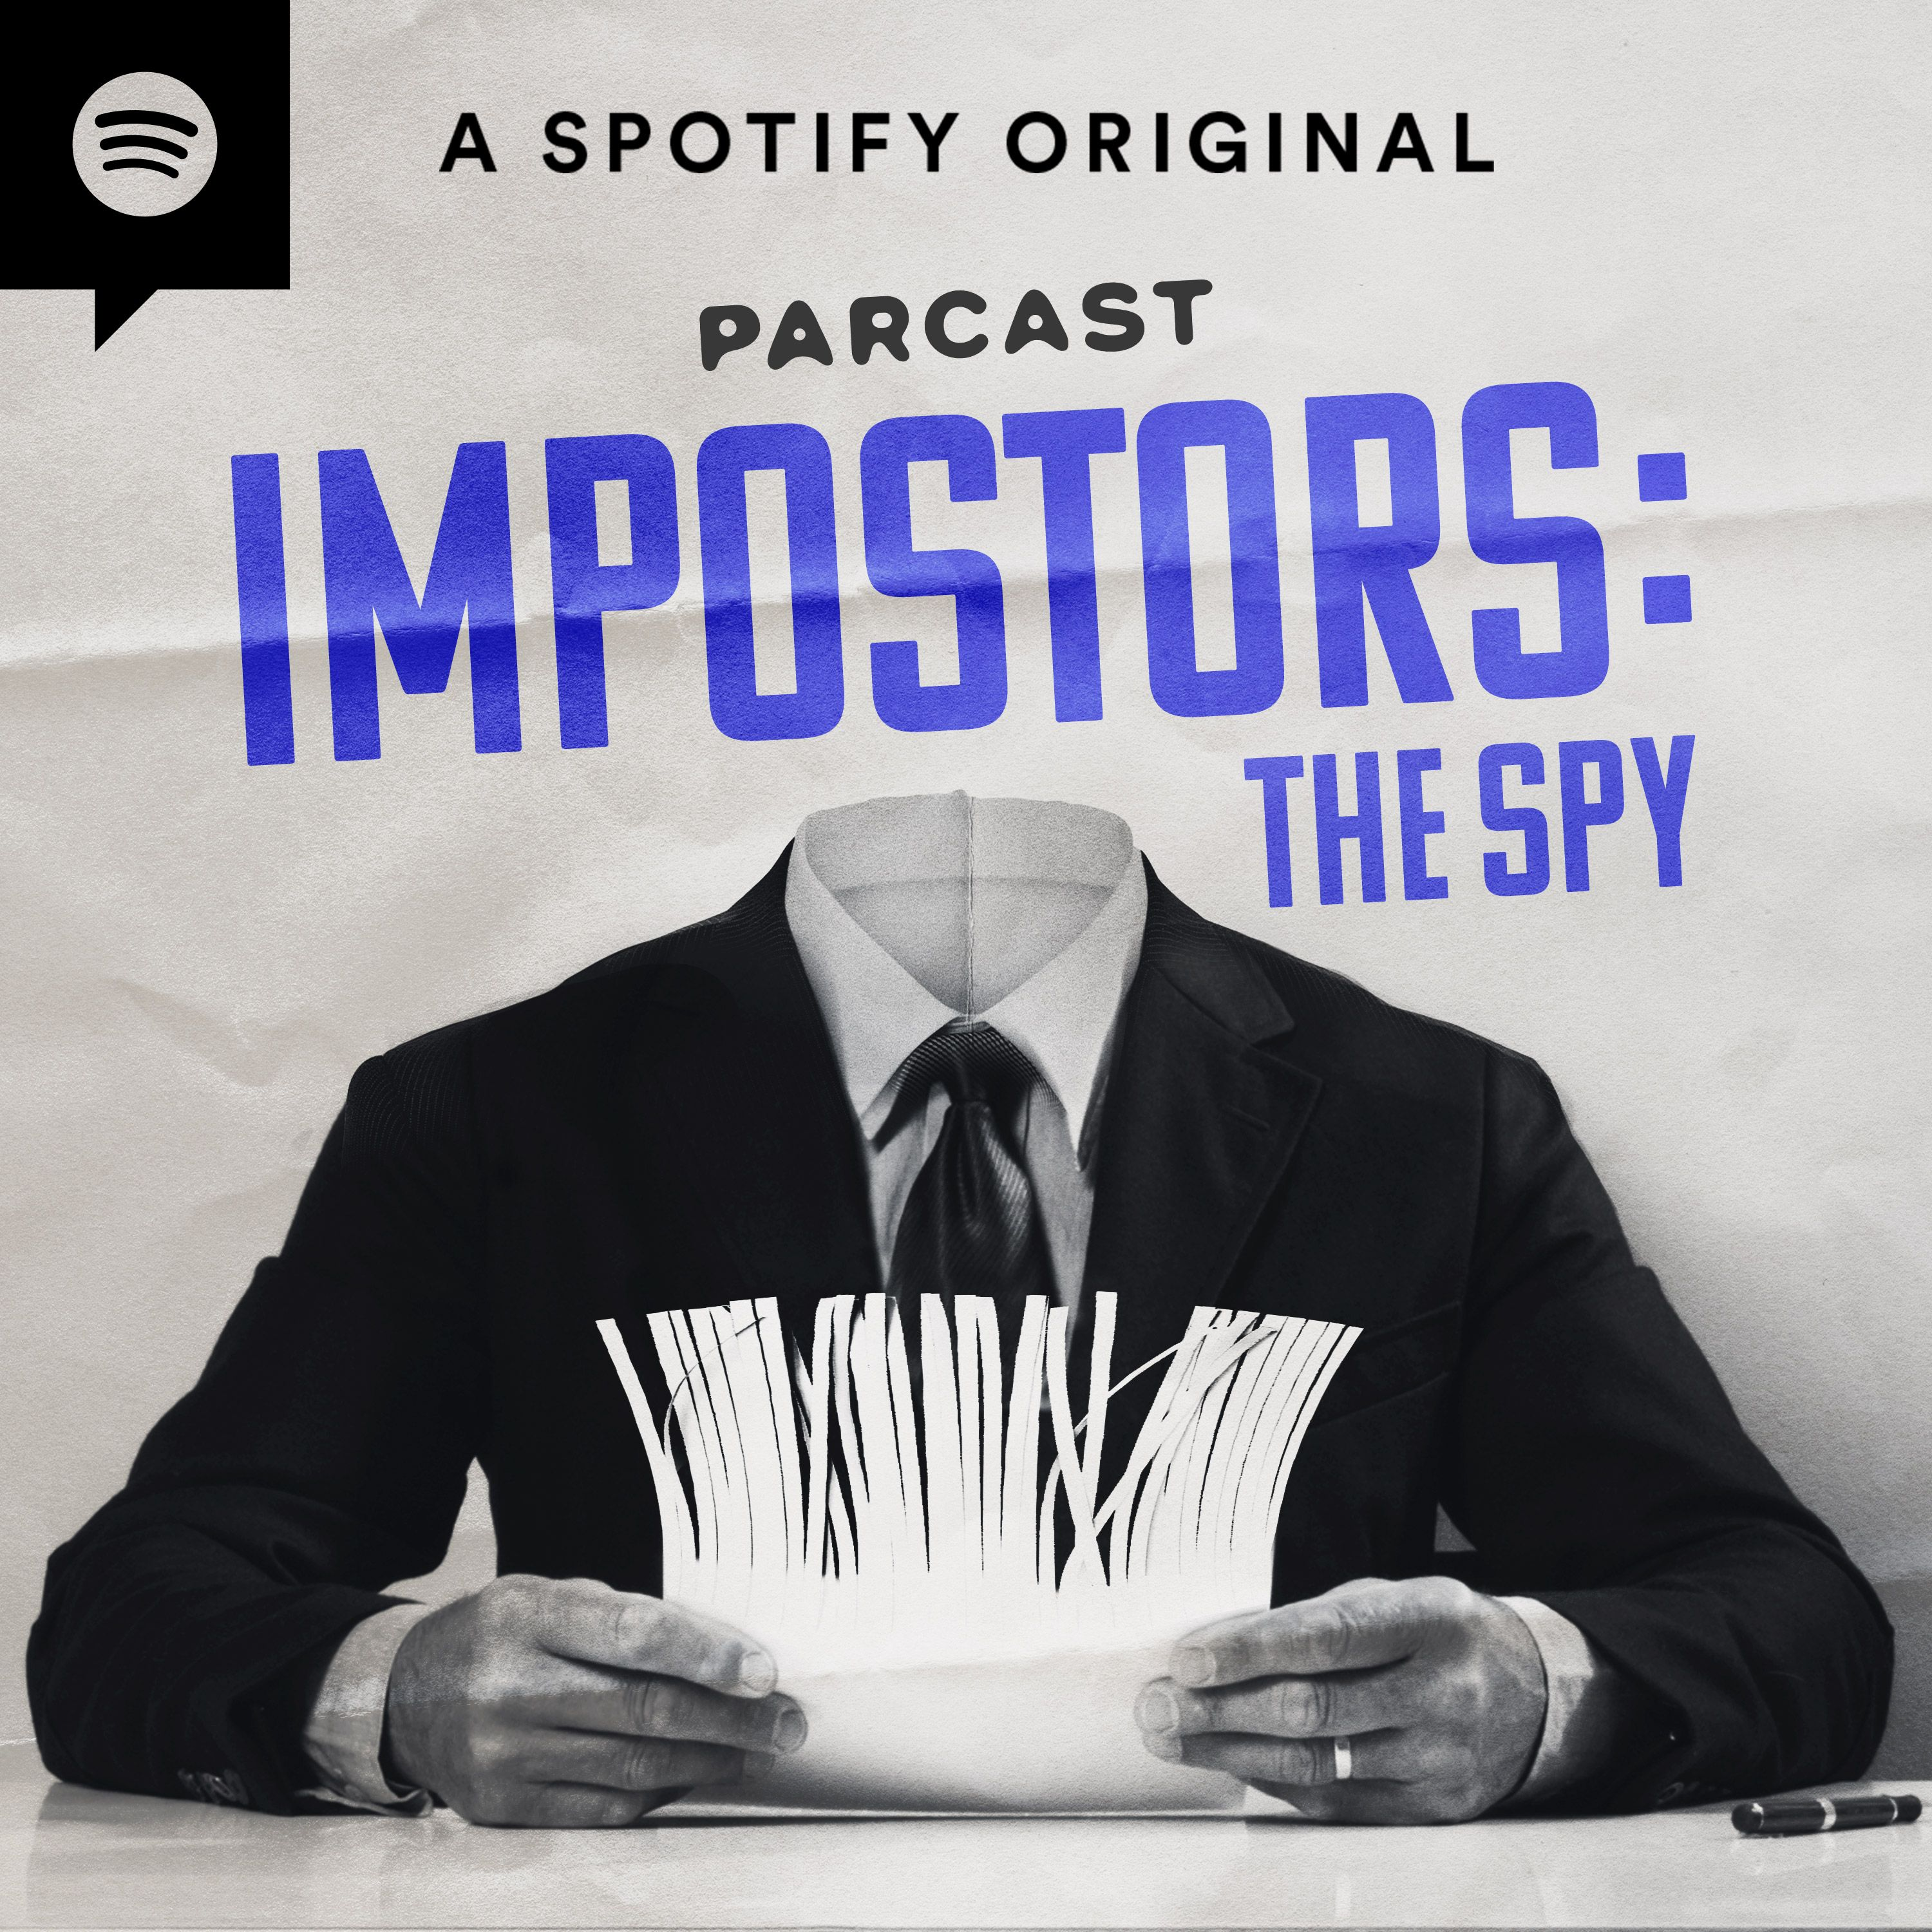 Introducing: Impostors